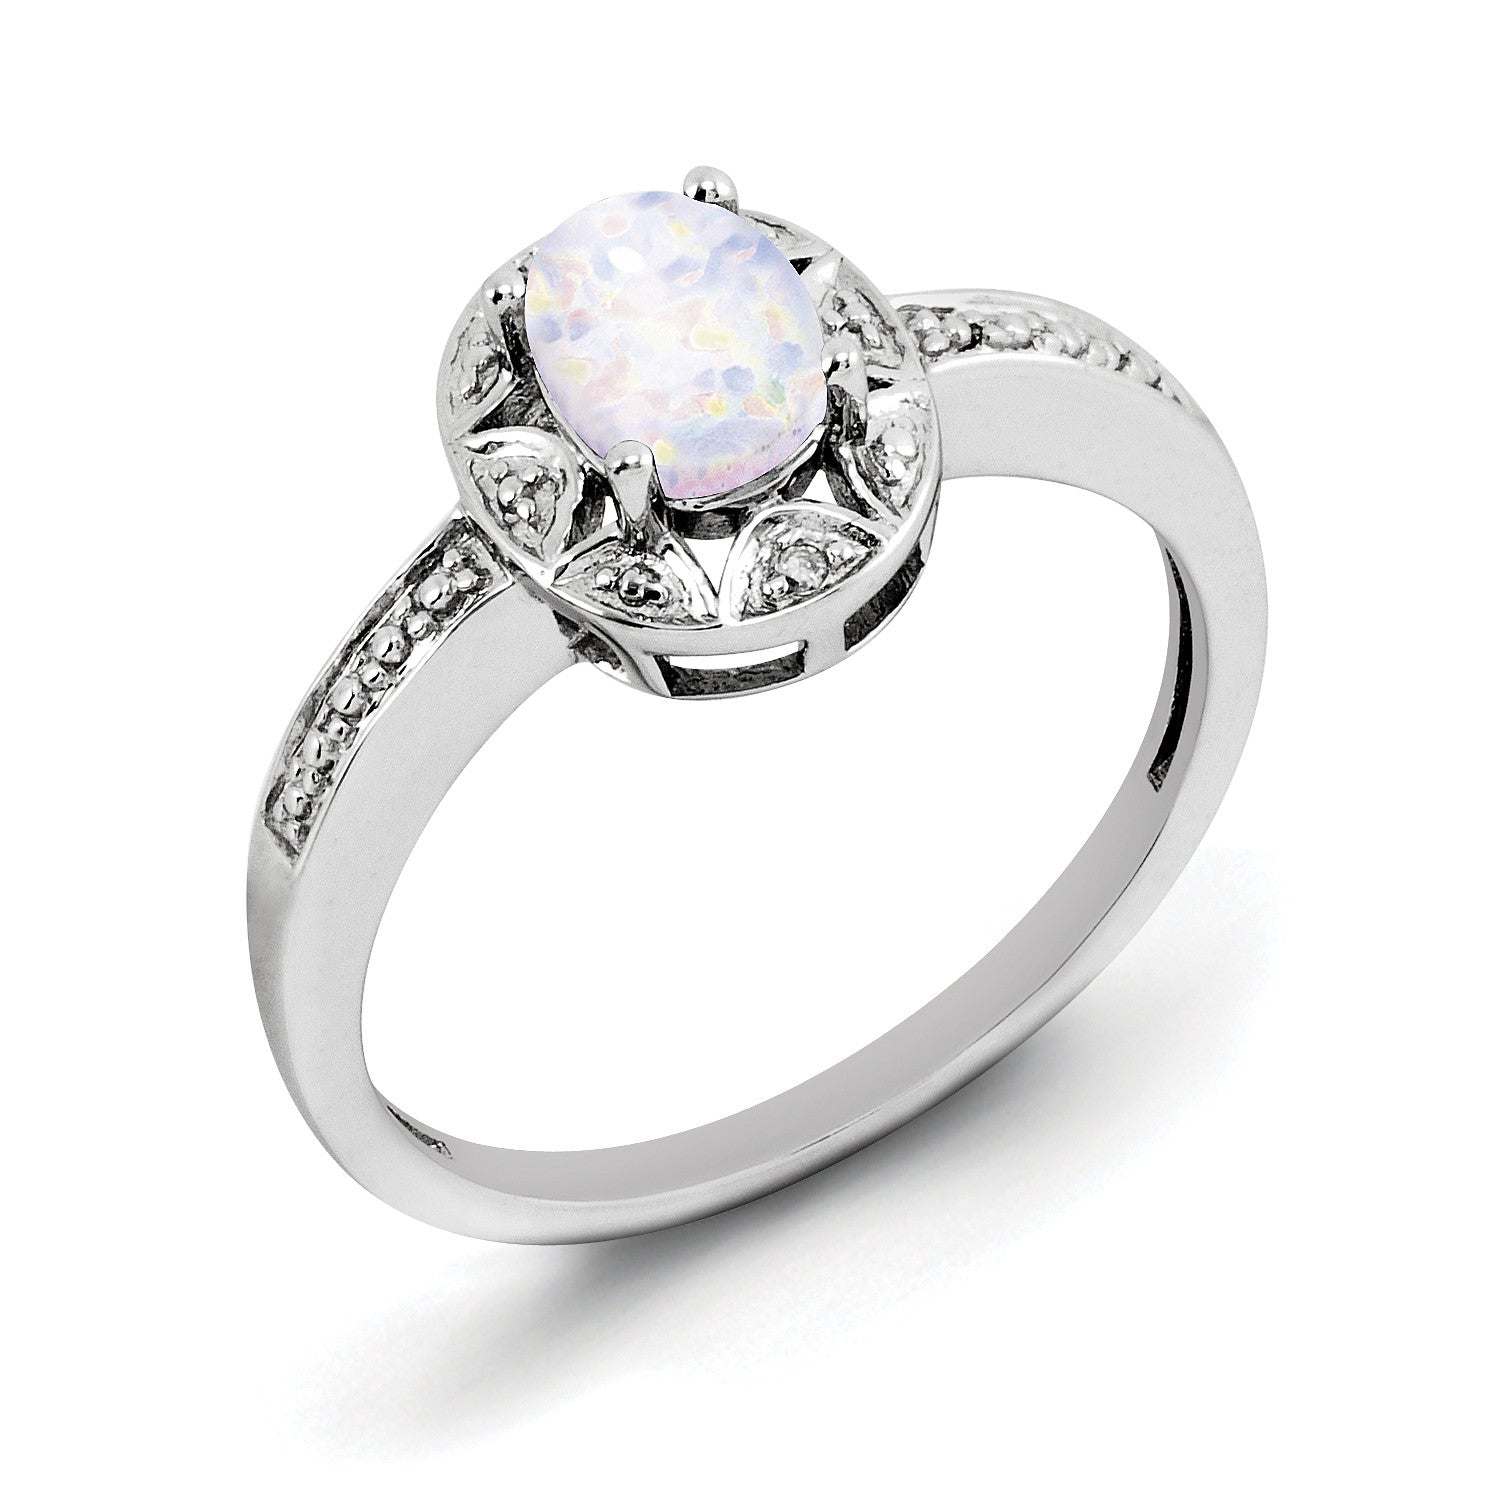 Sterling Silver /& CZ Brilliant Embers Heart Ring QMP1108